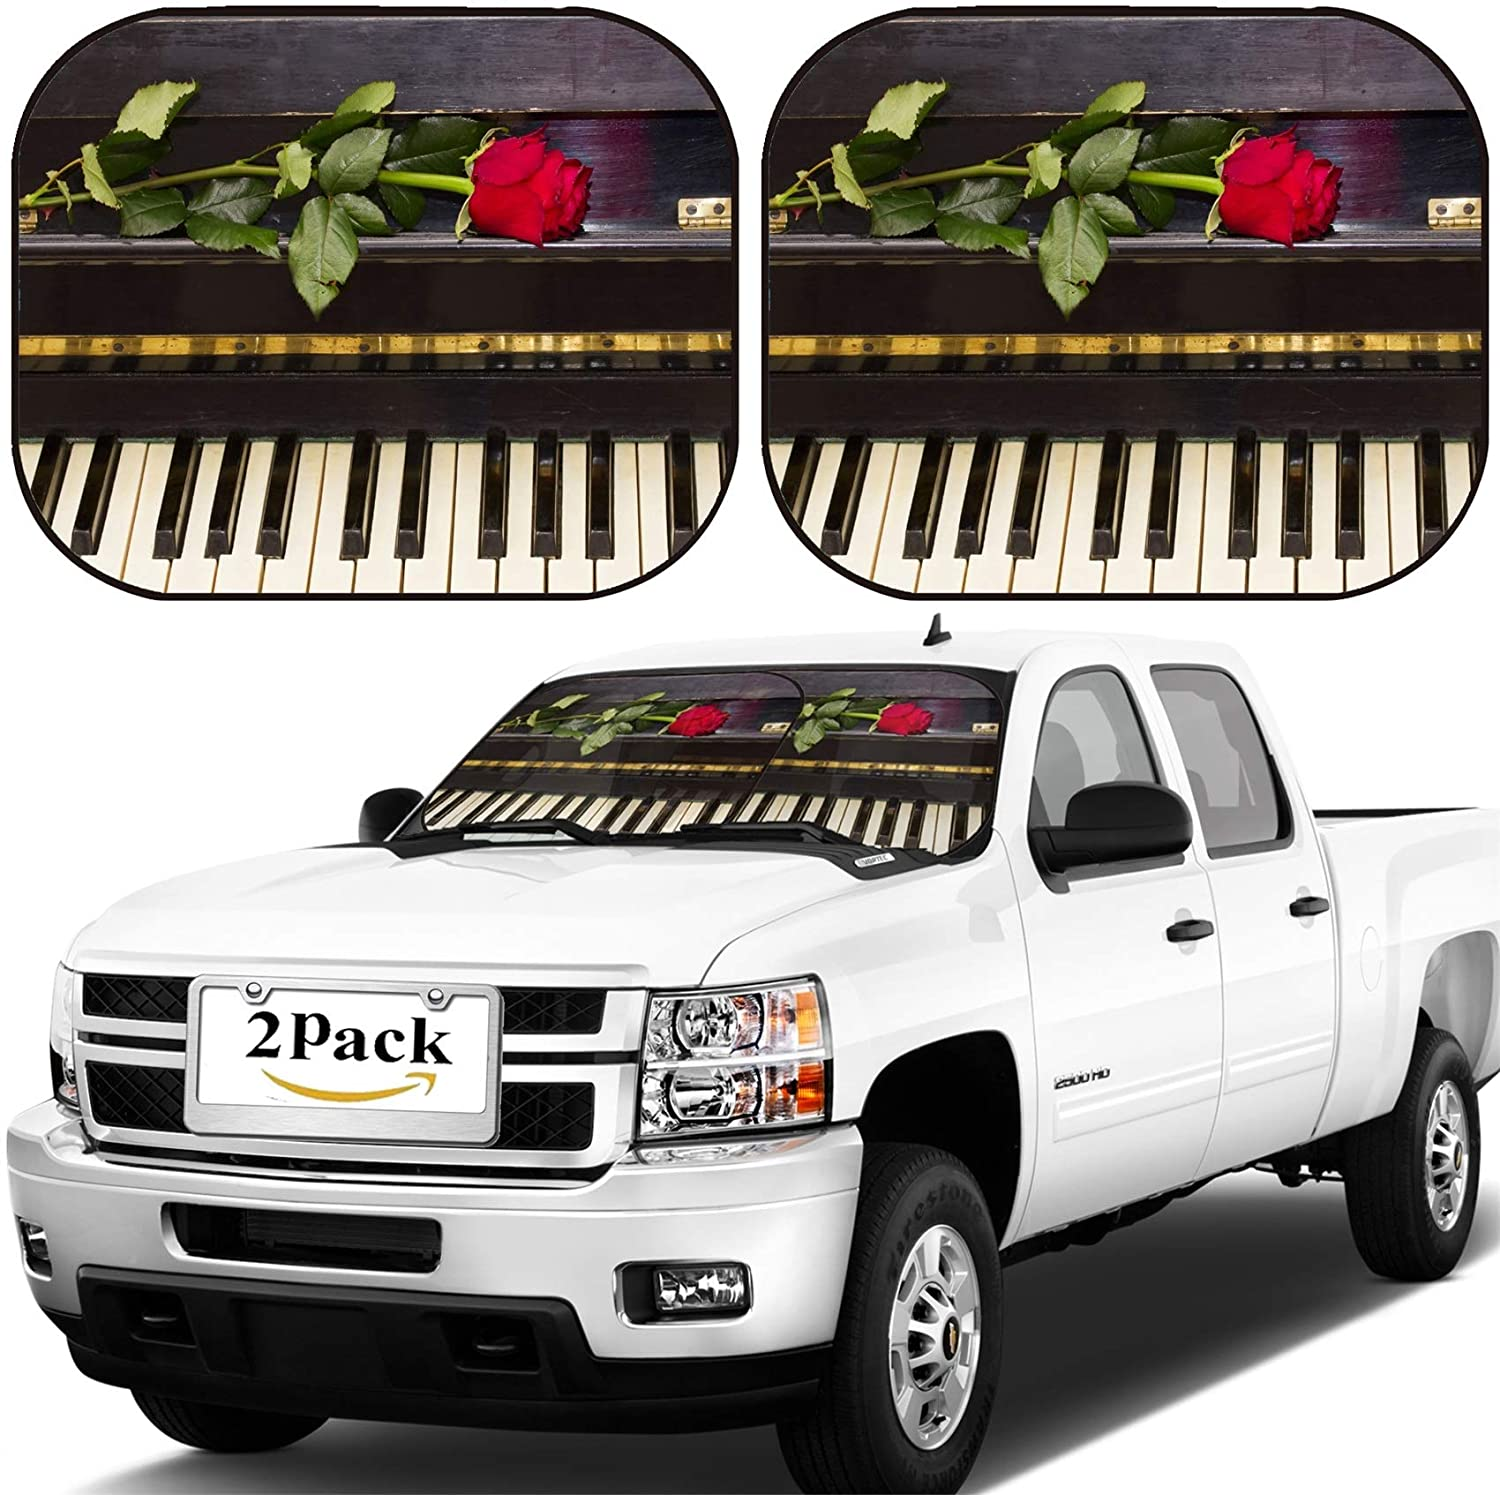 MSD Car Windshield Sun Shade, Universal Fit, 2-Piece for Car Window SunShades, Automotive Foldable Protector Cover, Image ID: 24239473 one red Rose on Vintage Black Piano